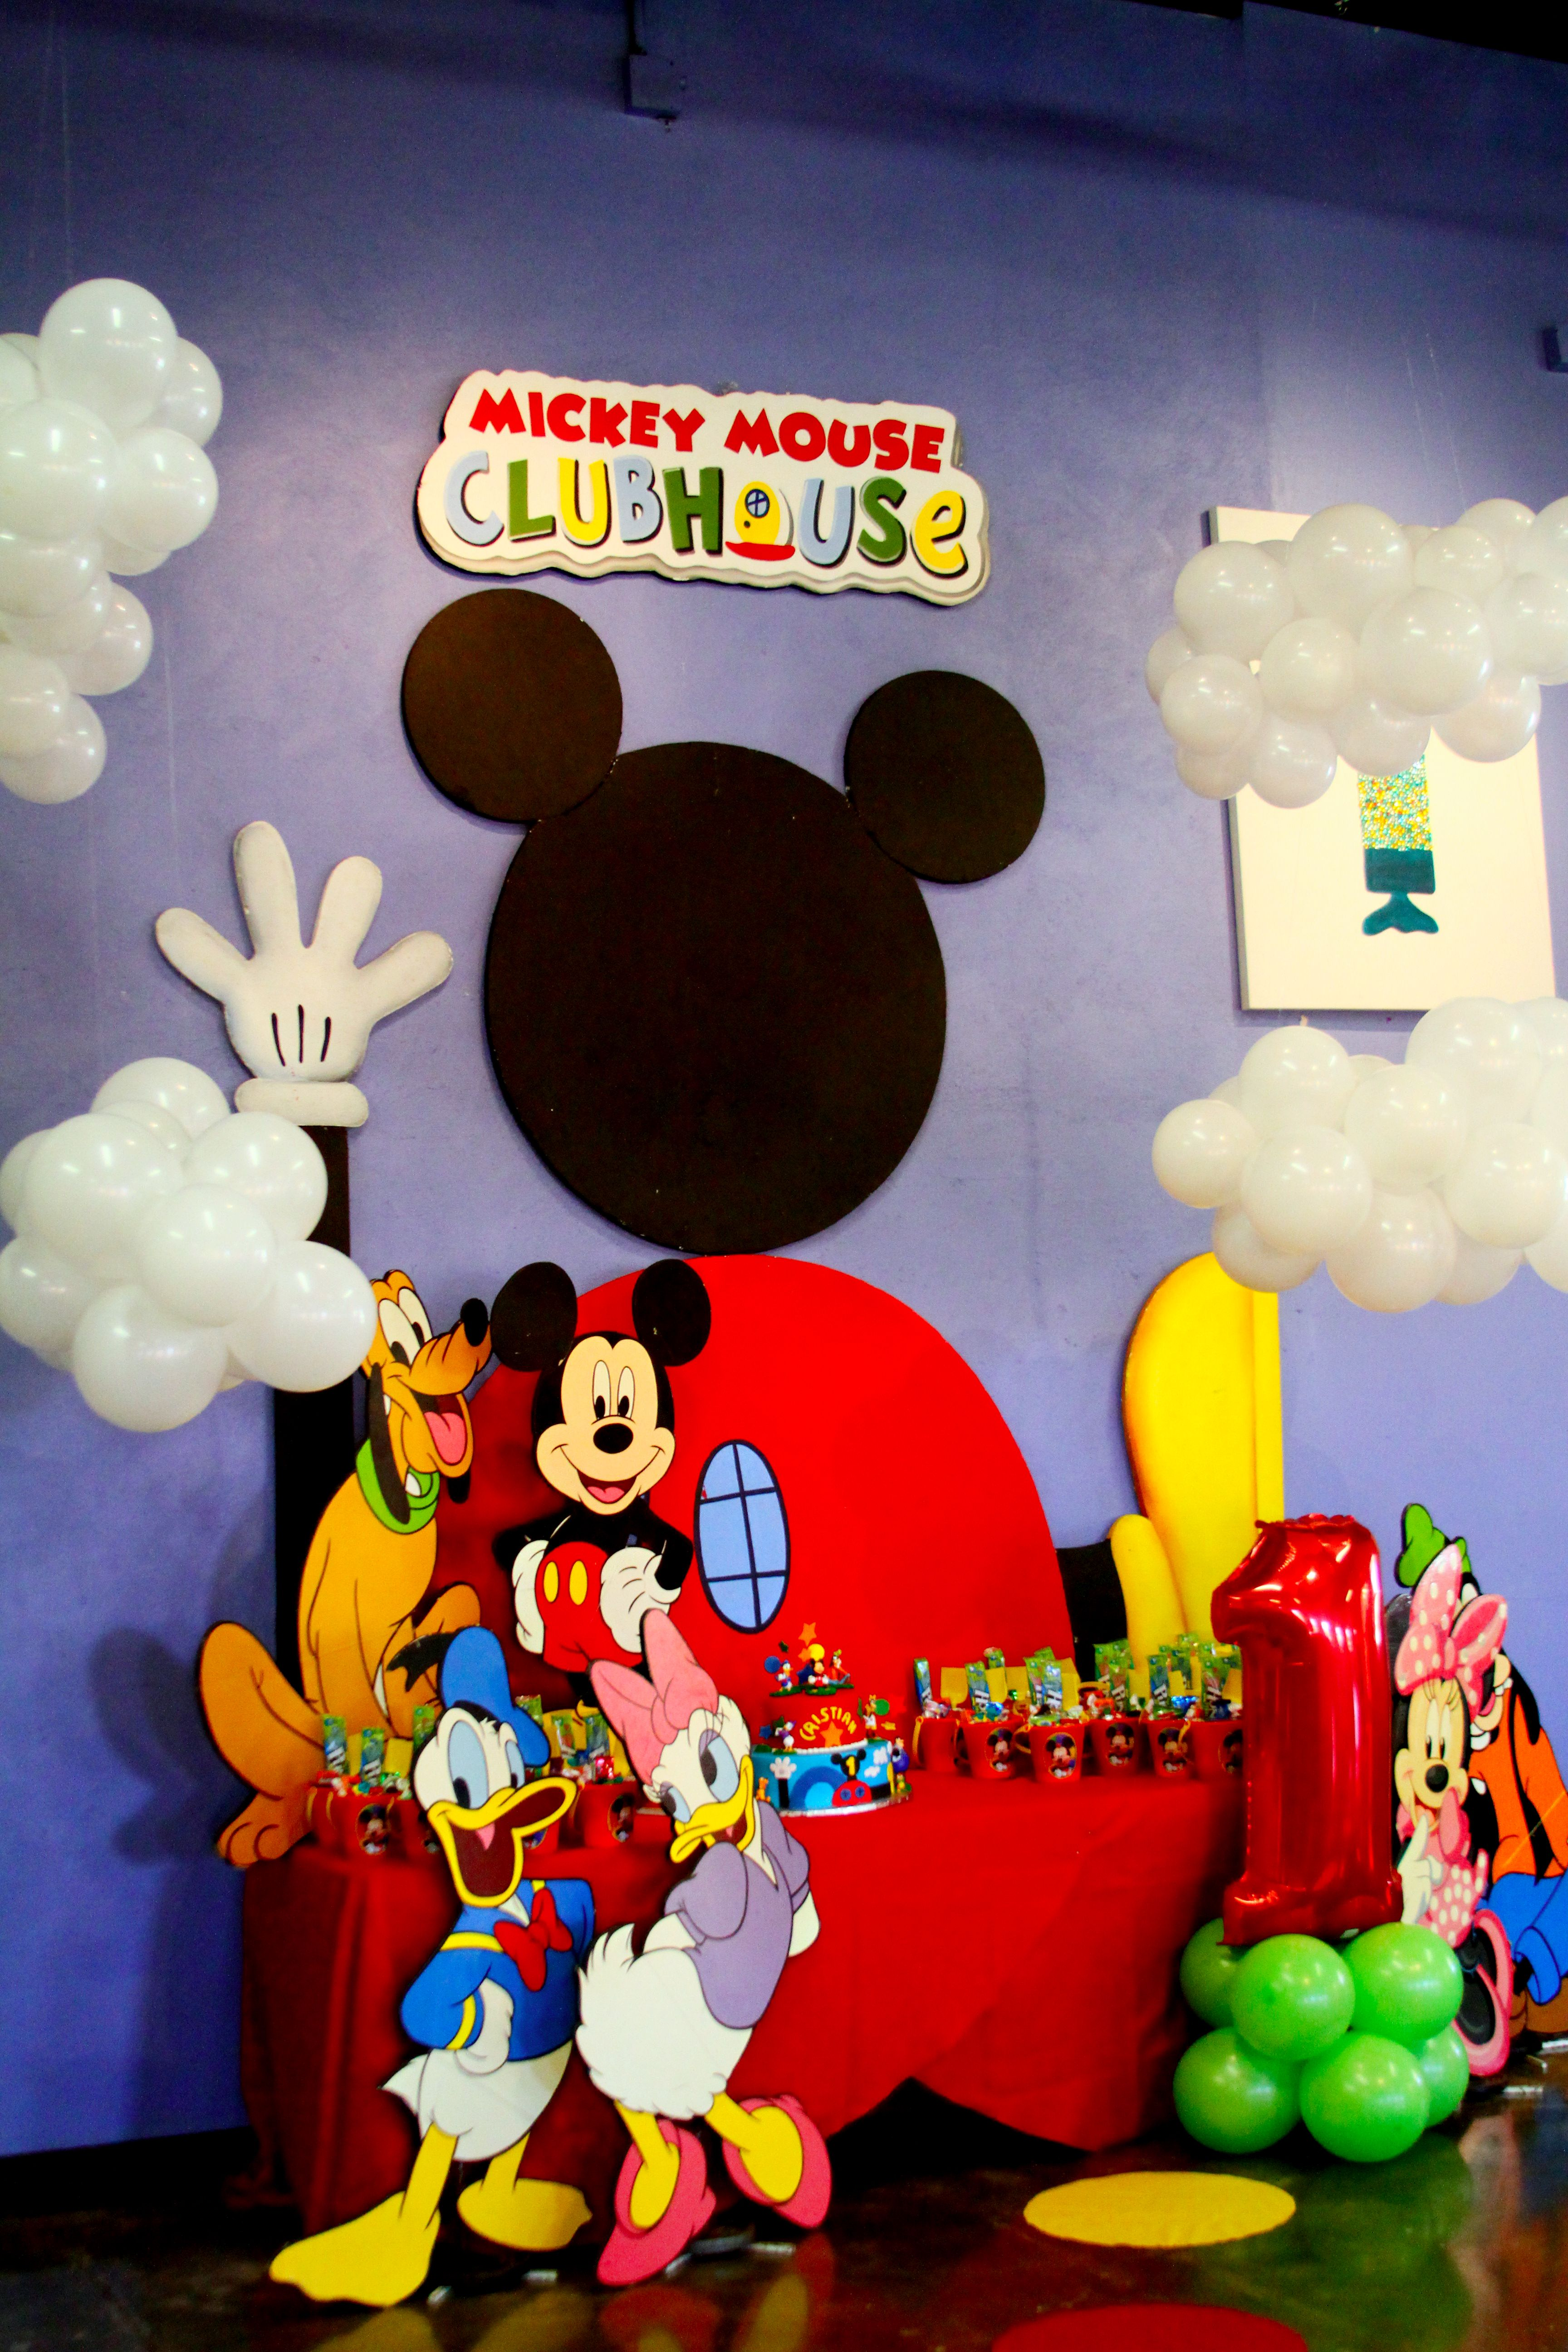 Mickey Mouse Club House Birthday Party Decor by Mu equita Mayra